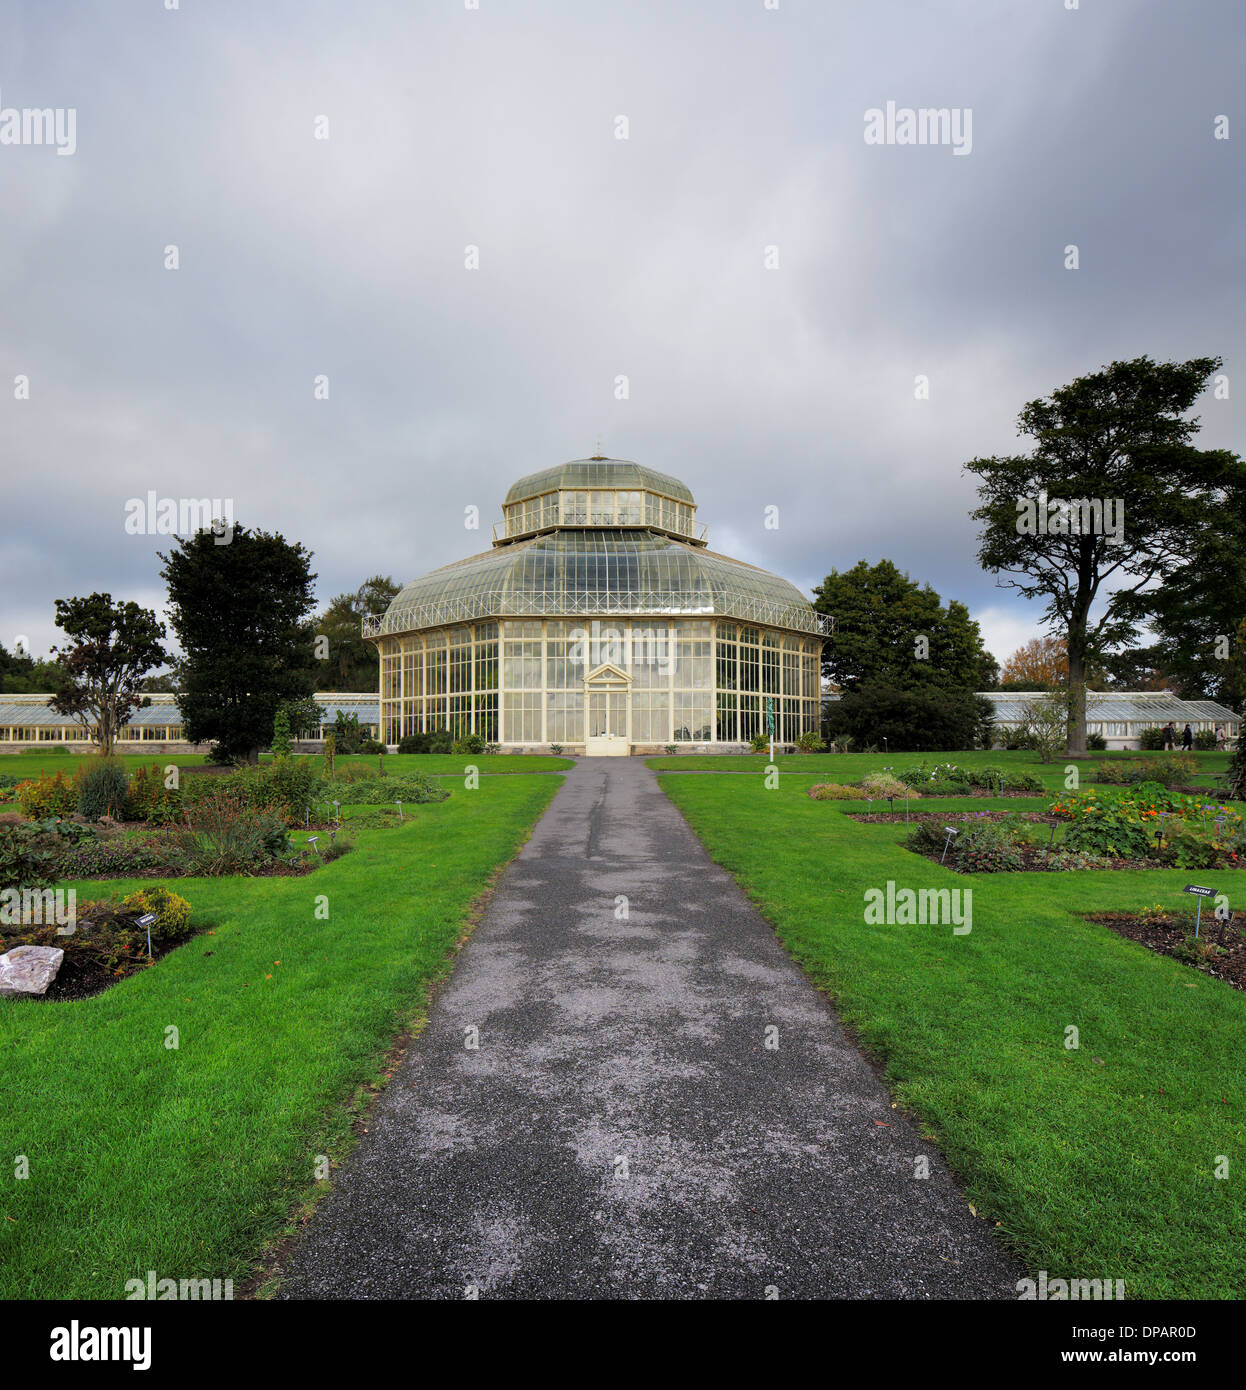 The Main Glasshouse Of The National Botanic Gardens In Dublin, Ireland.  Built In 1884 When The Previous Glasshouse Was Damaged